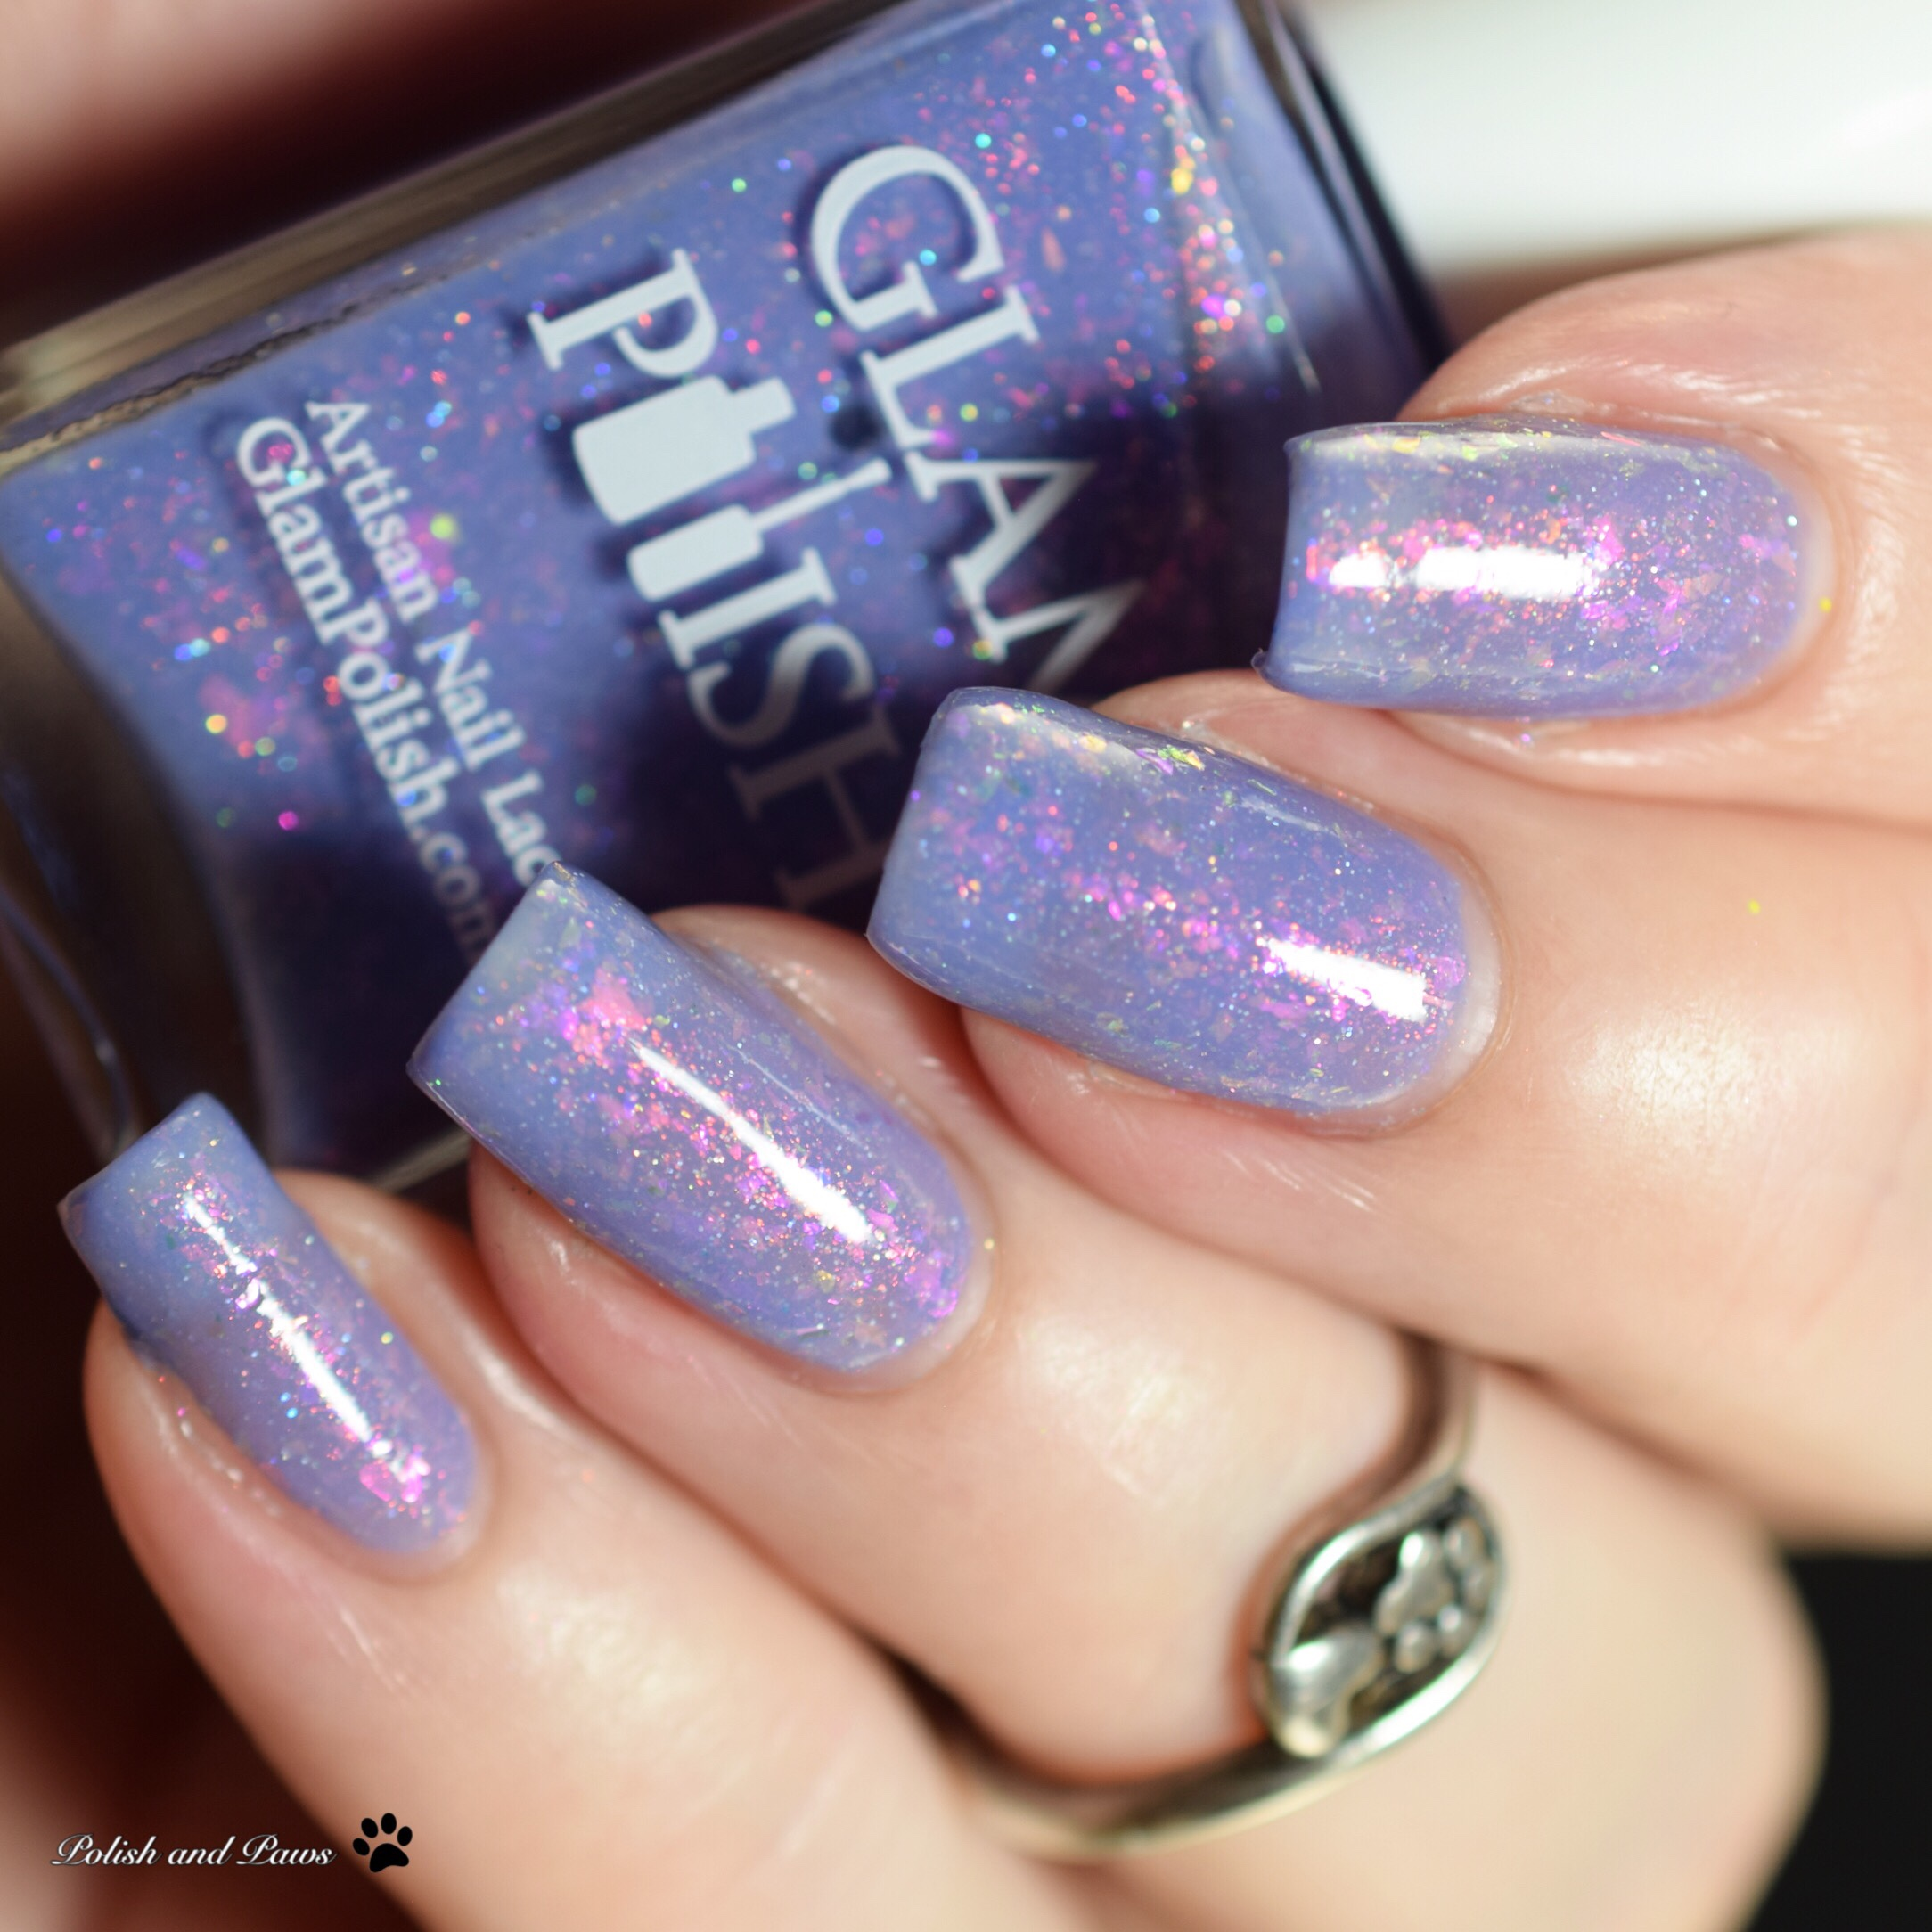 Glam Polish Carry Moonbeams Home in a Jar